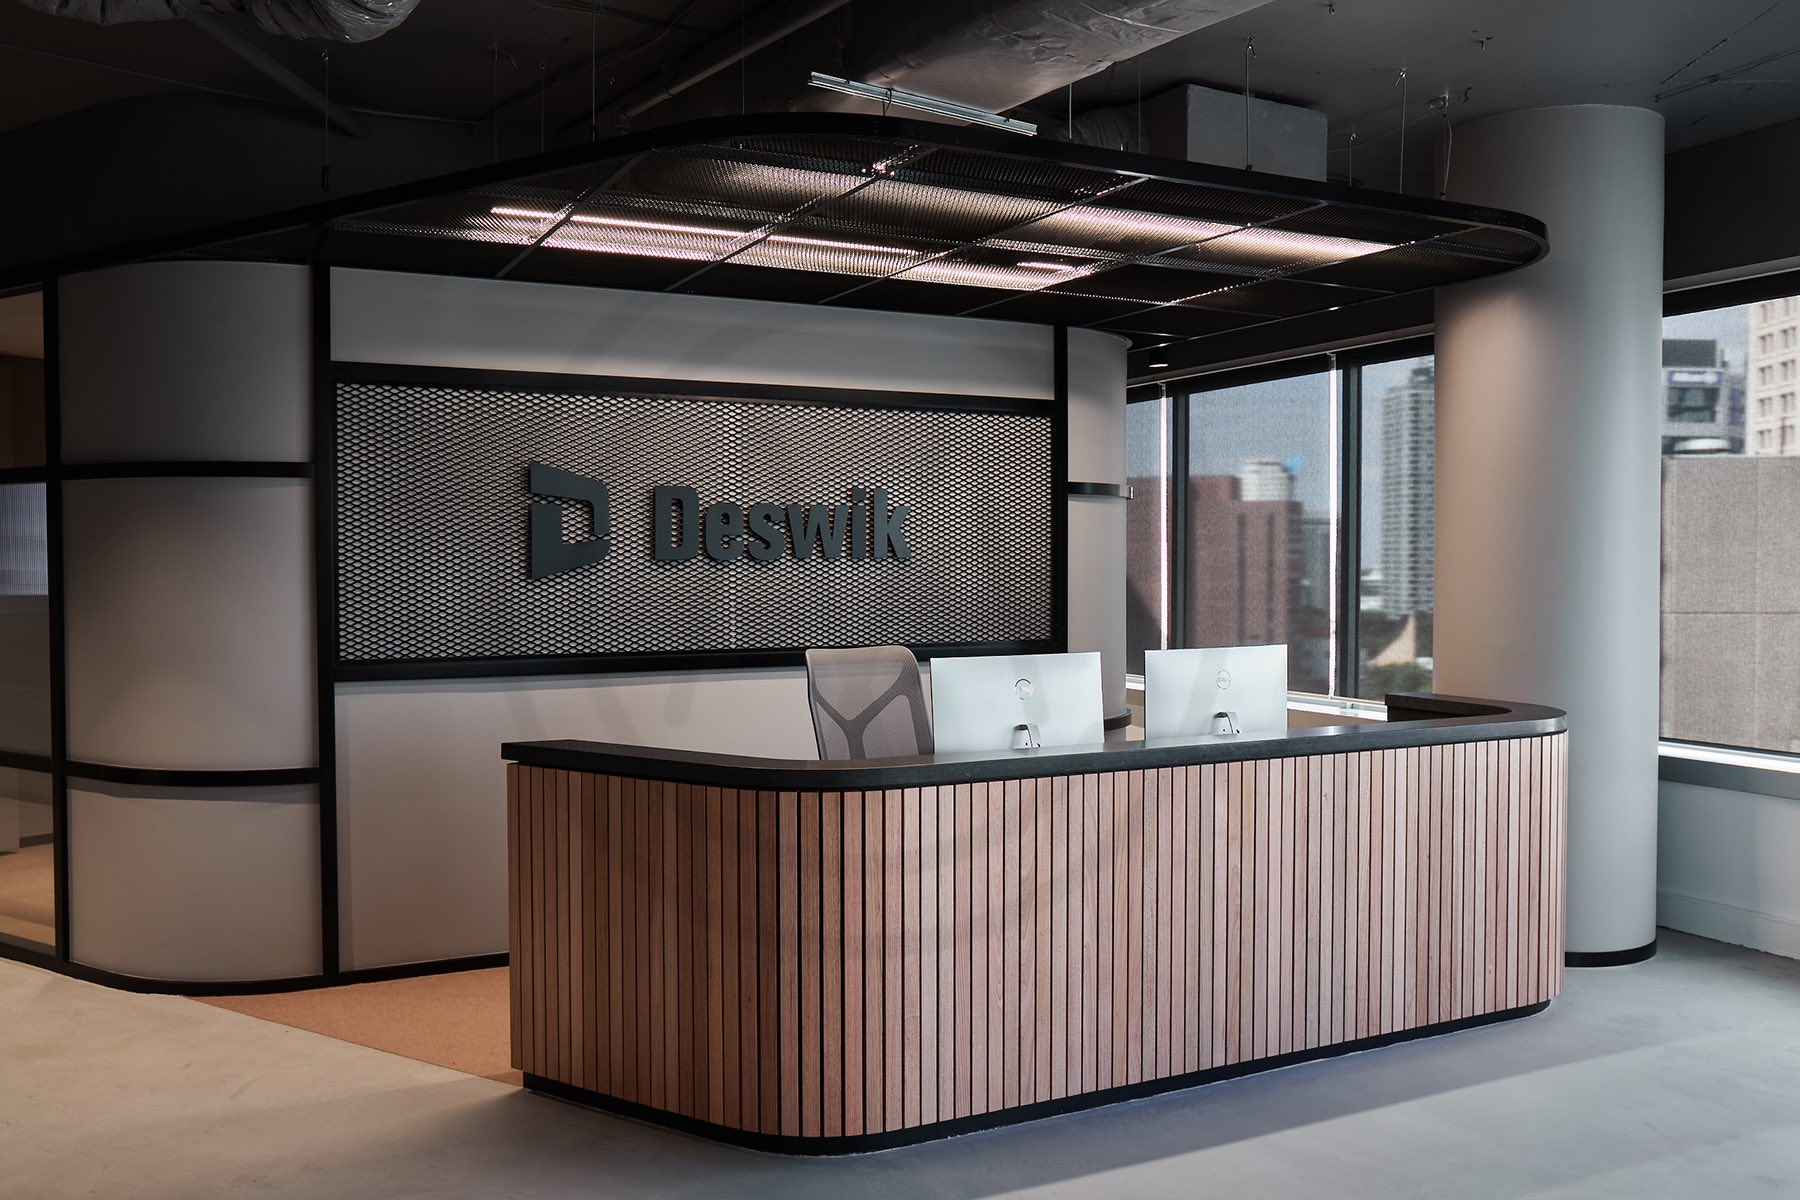 deswik-brisbane-office-22